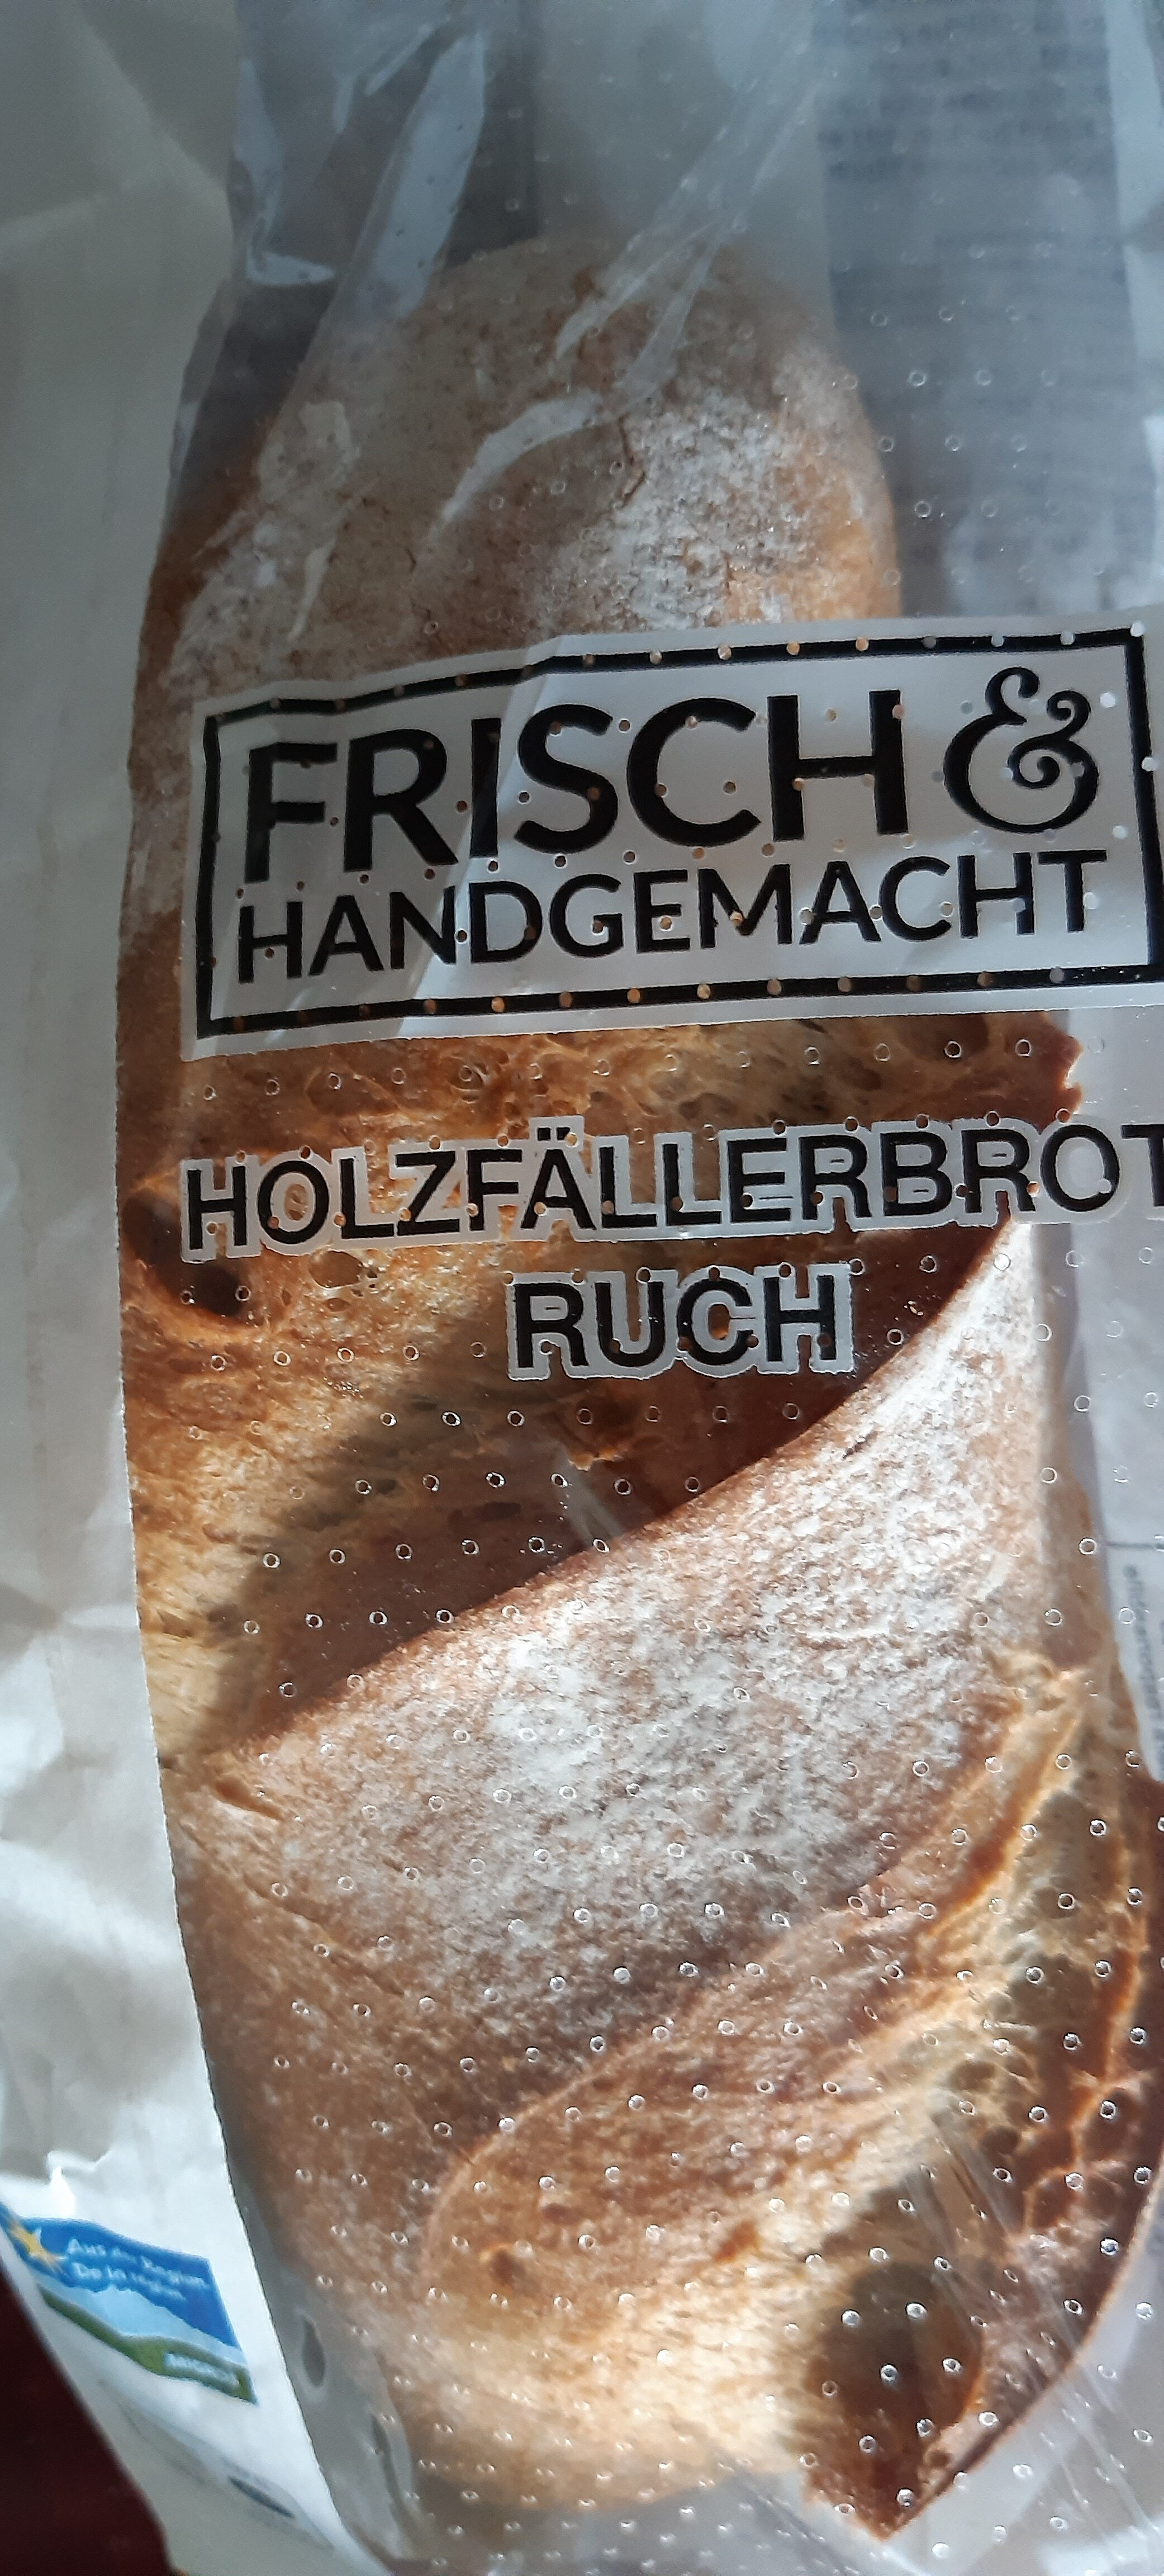 Holzfällerbrot Ruch - Prodotto - it